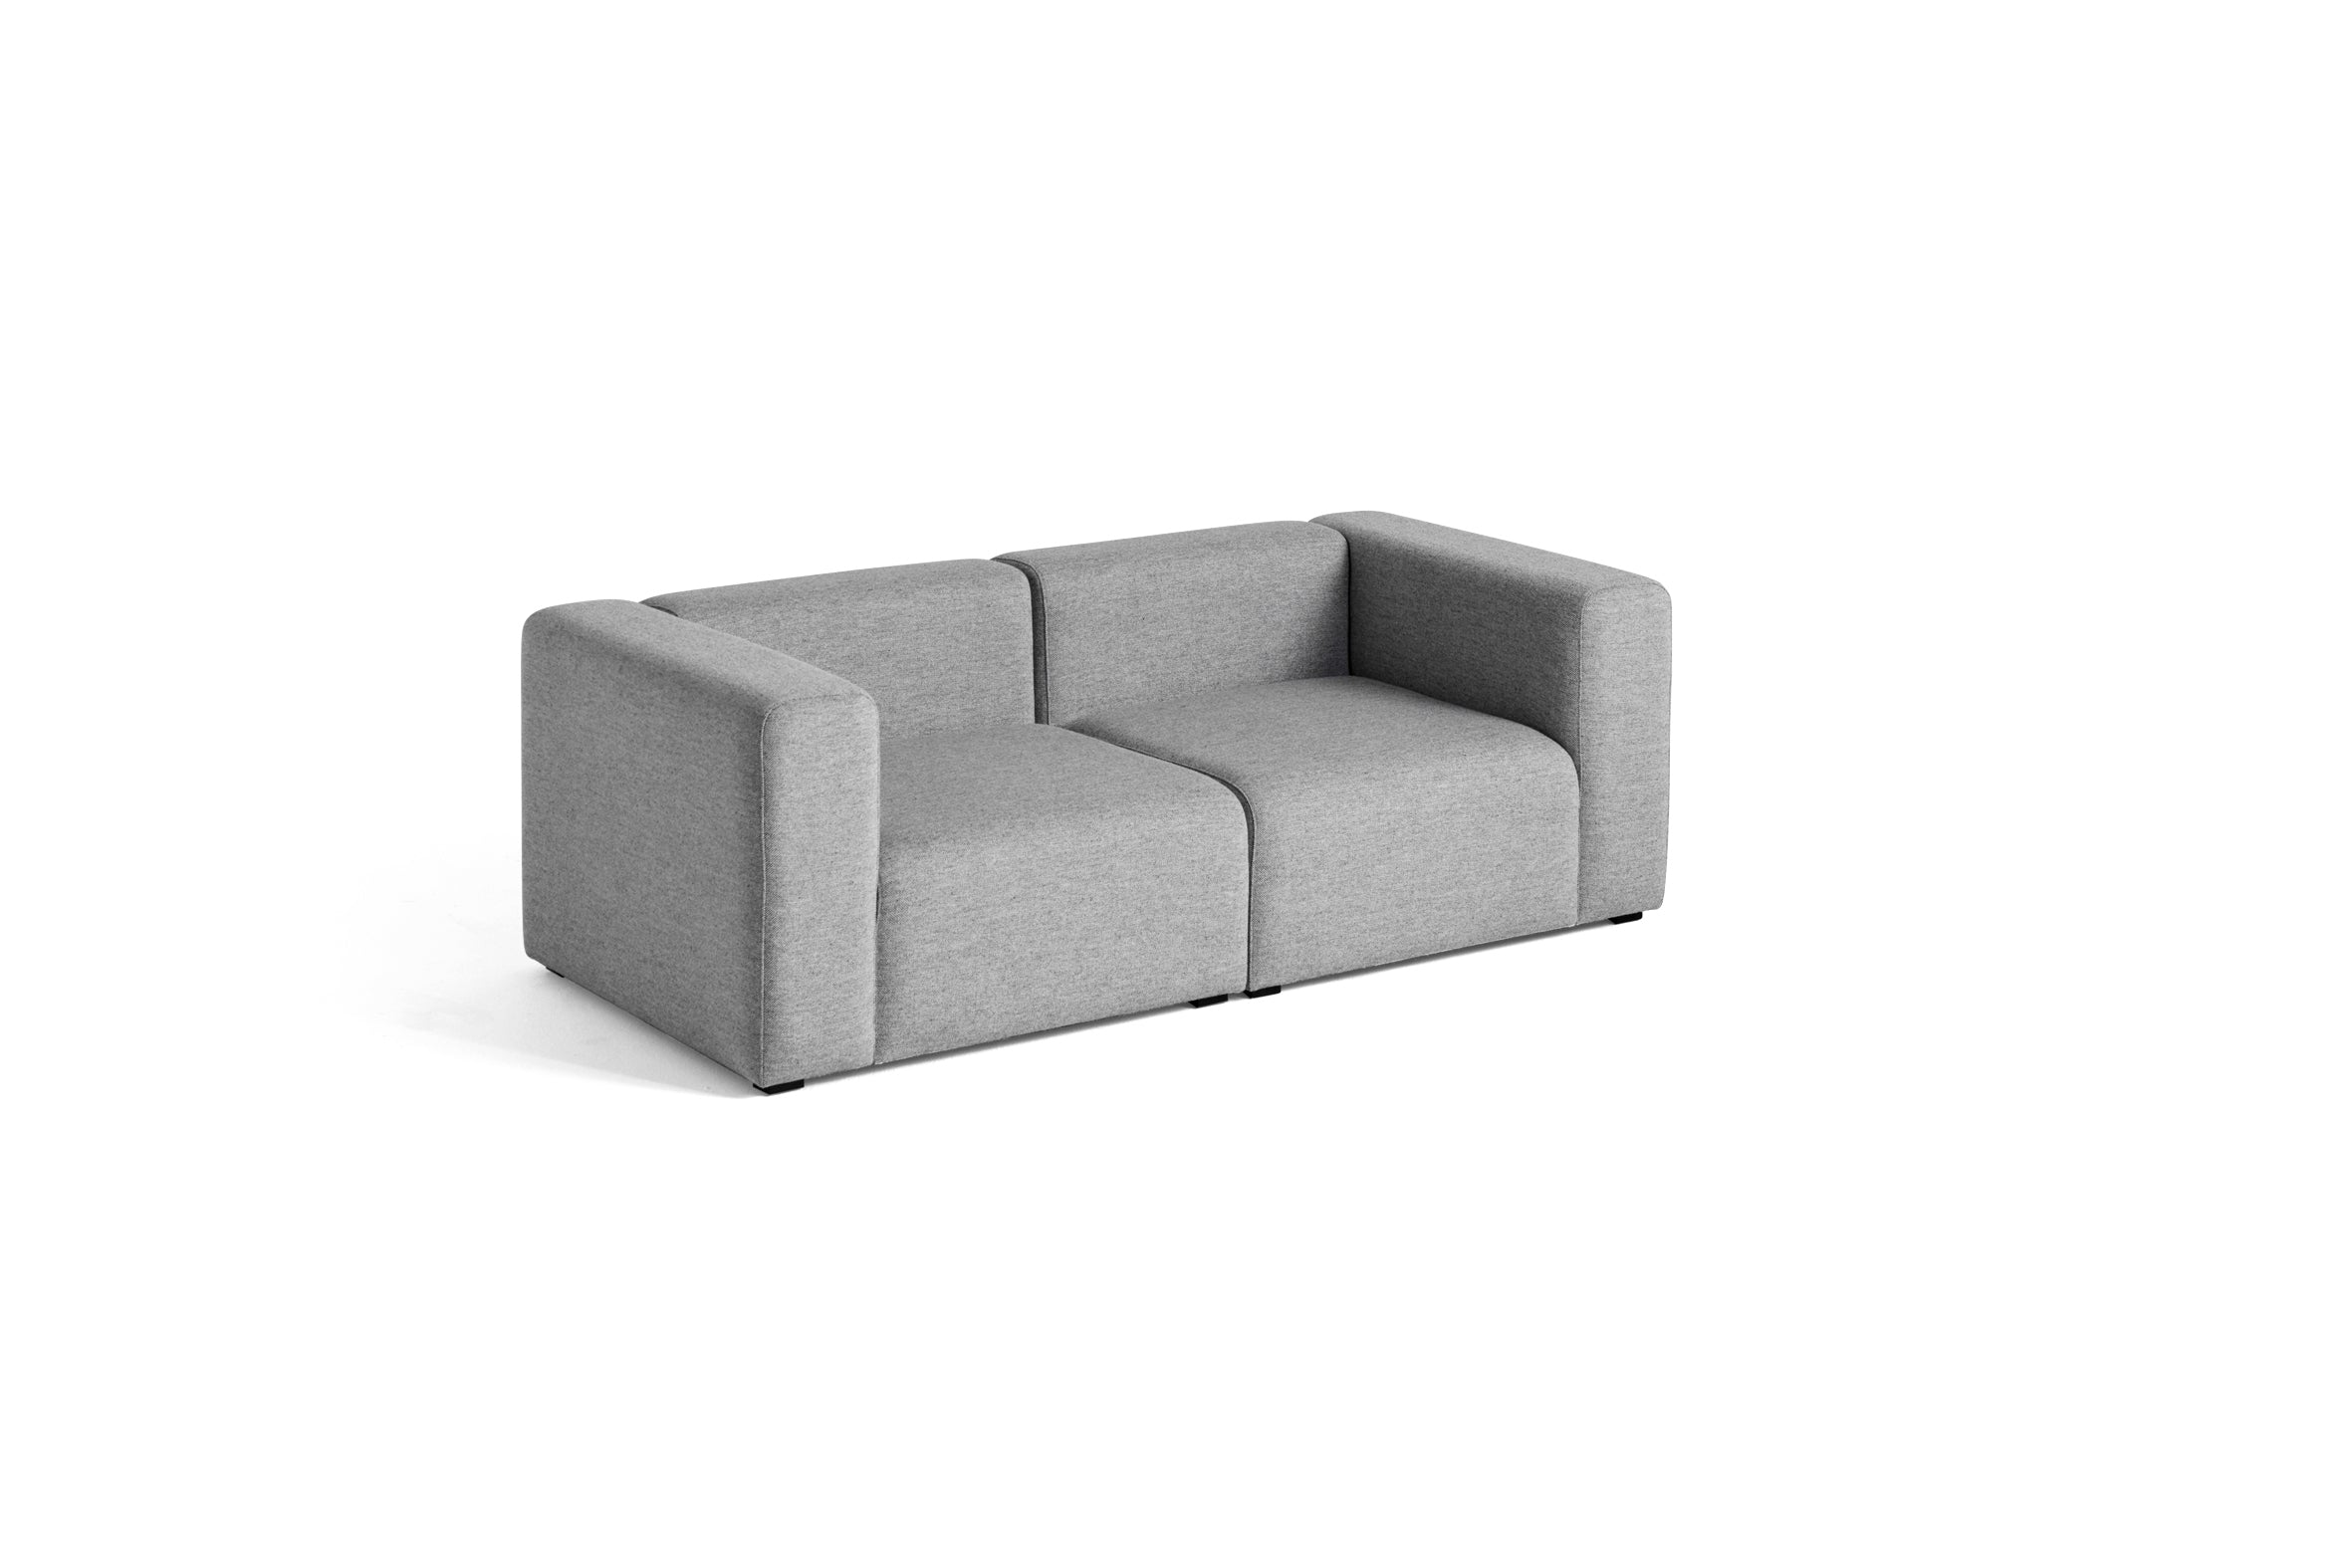 Mags 2 Seater Sofa Combination (from £1,750)